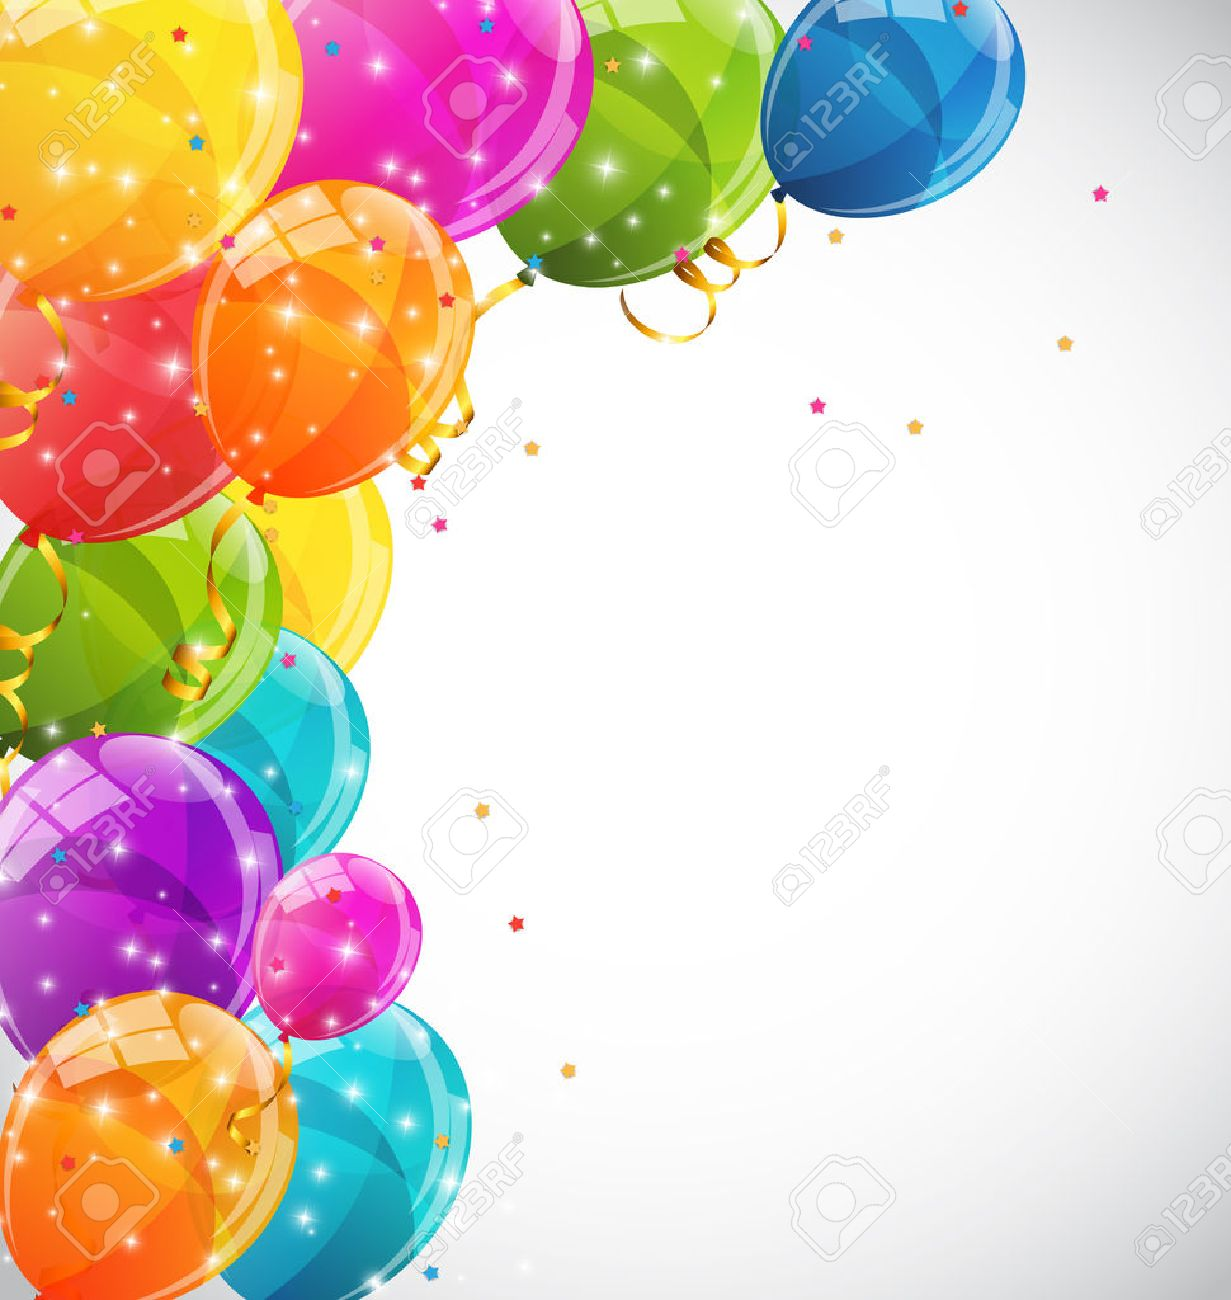 Color Glossy Balloons Background Vector Illustration EPS10 - 50708901